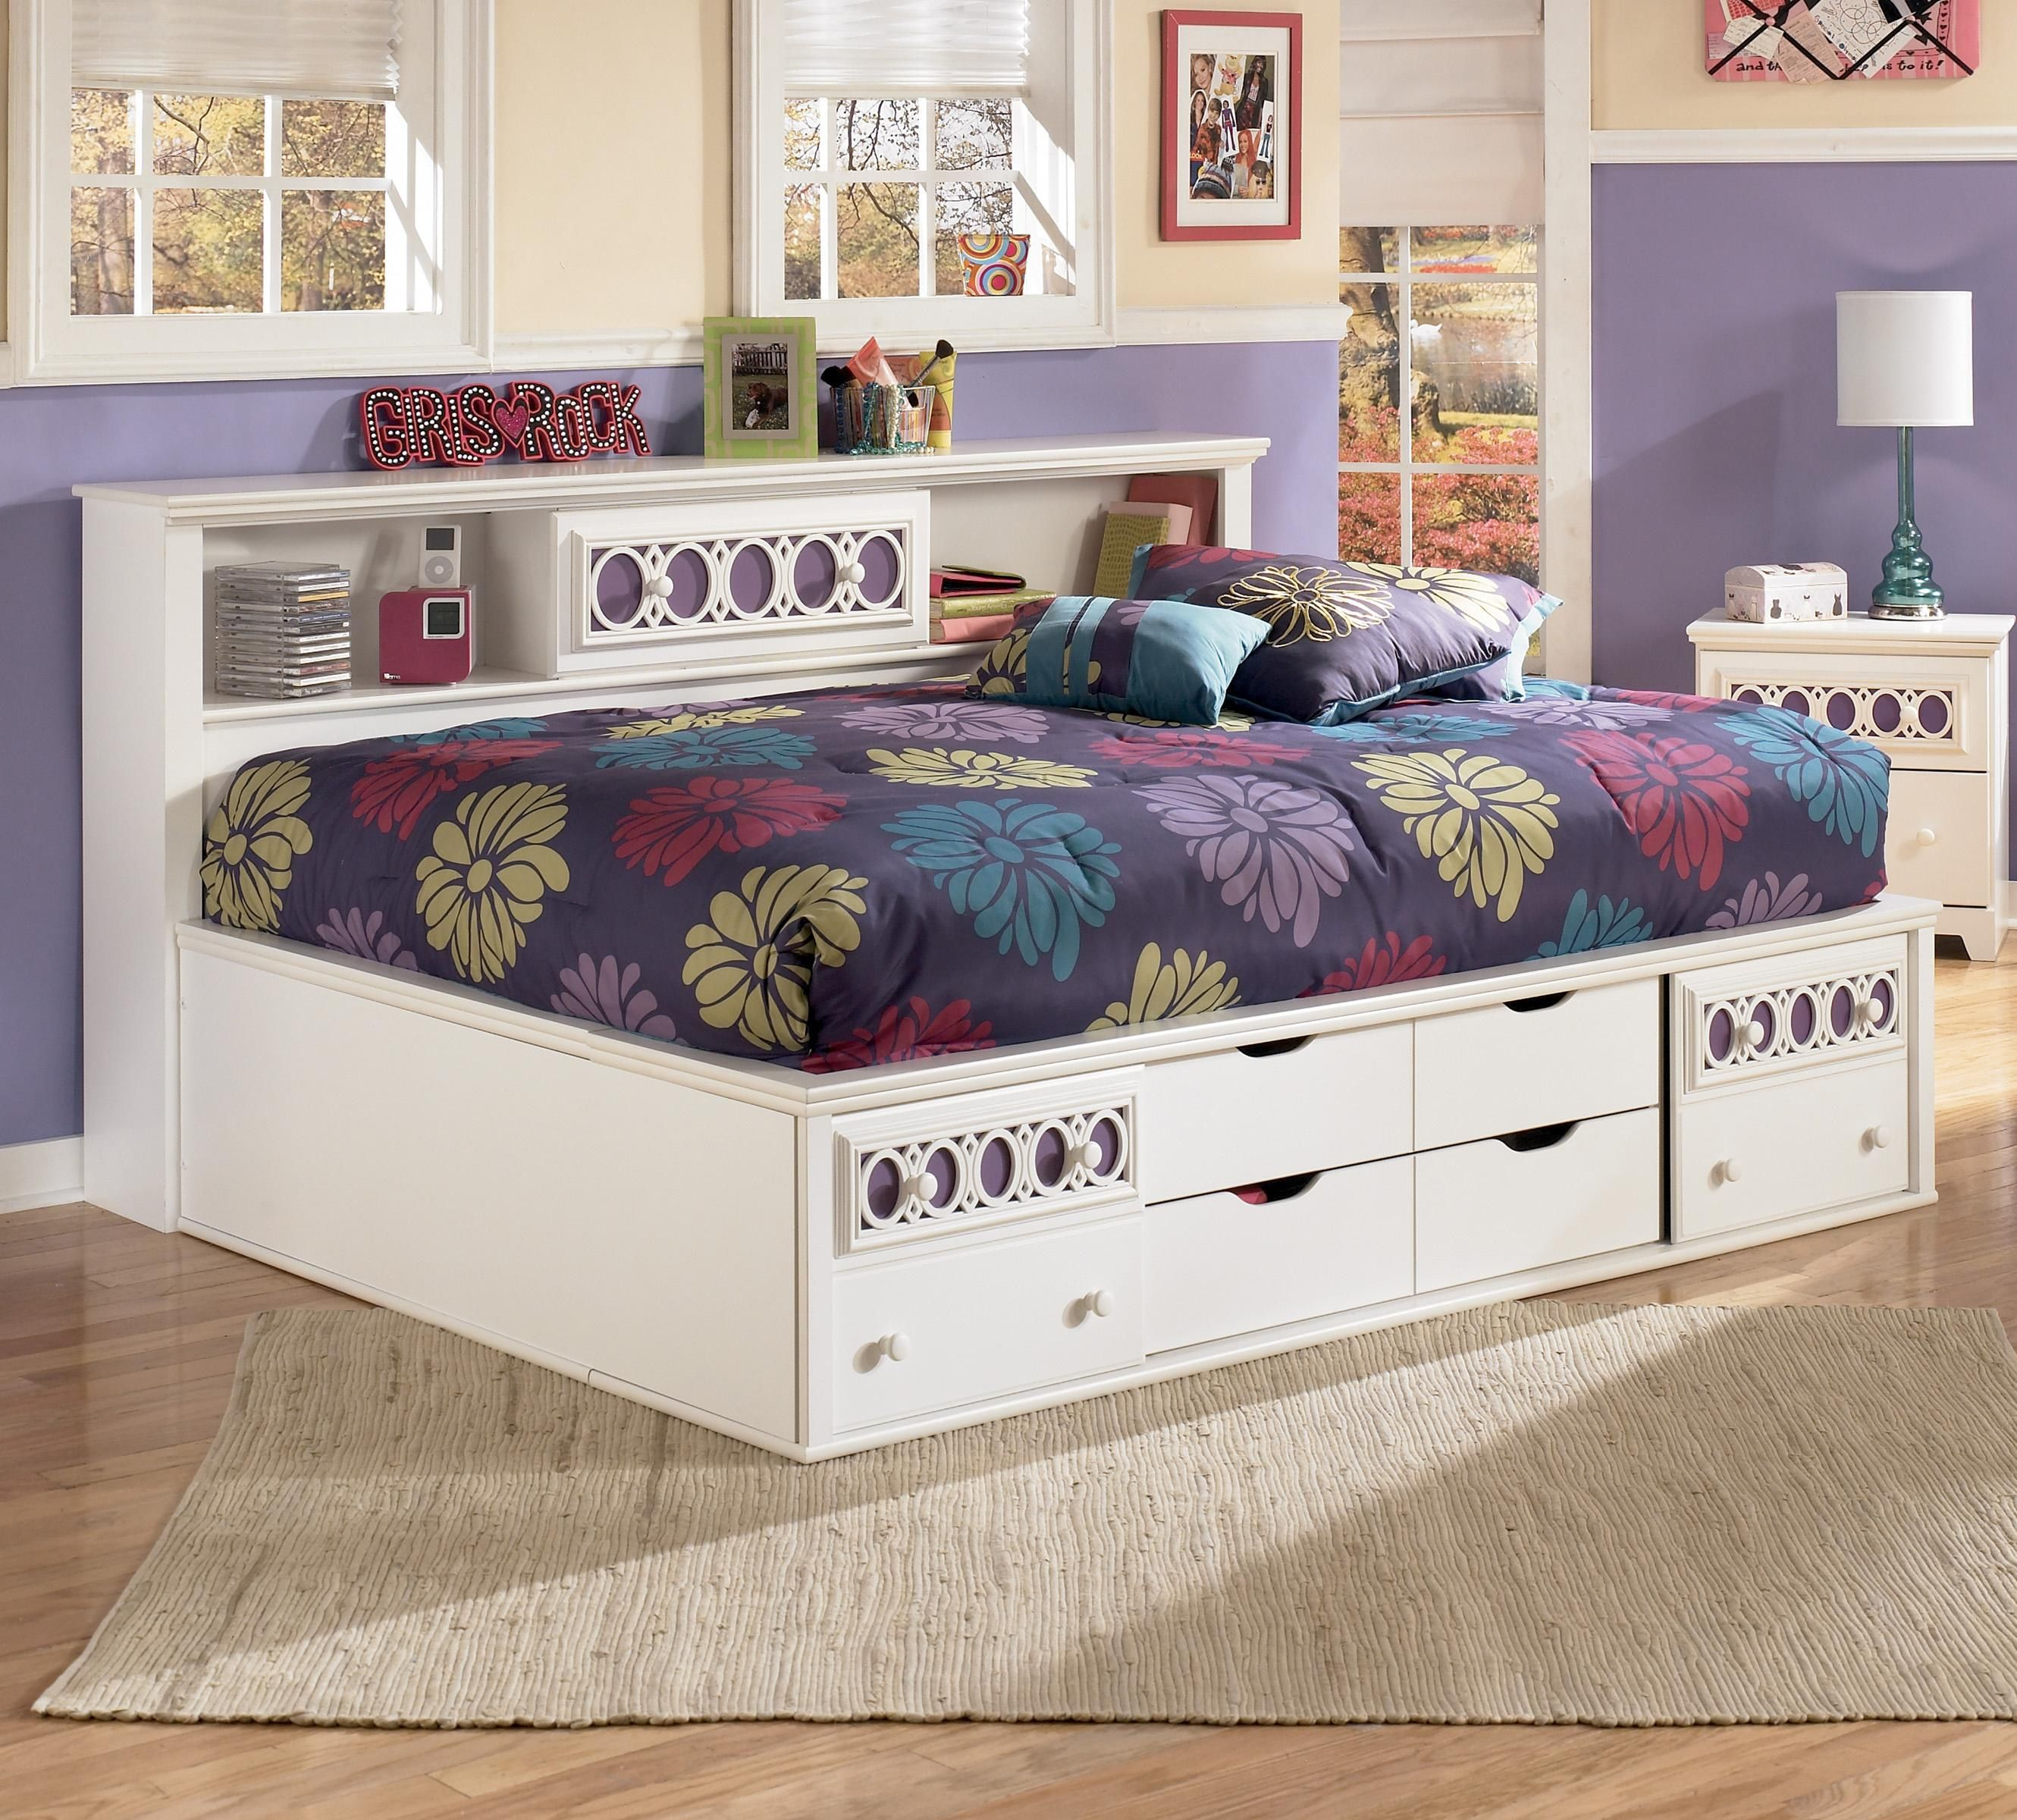 Ashley Furniture Kids Bed Modern Contemporary Furniture Check